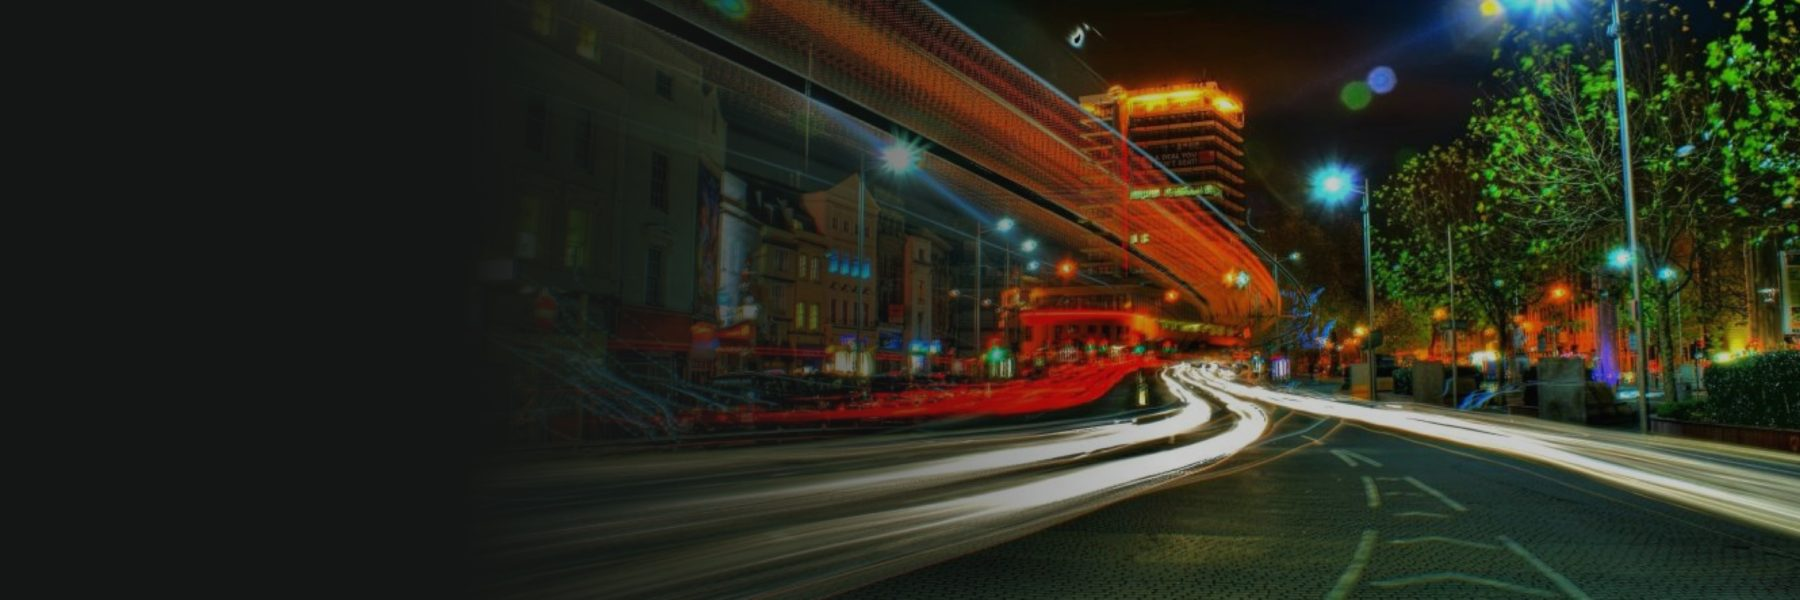 Bristol City Centre at Night by Luke Andrew Scowen | https://www.flickr.com/photos/lukeas09/4129402620